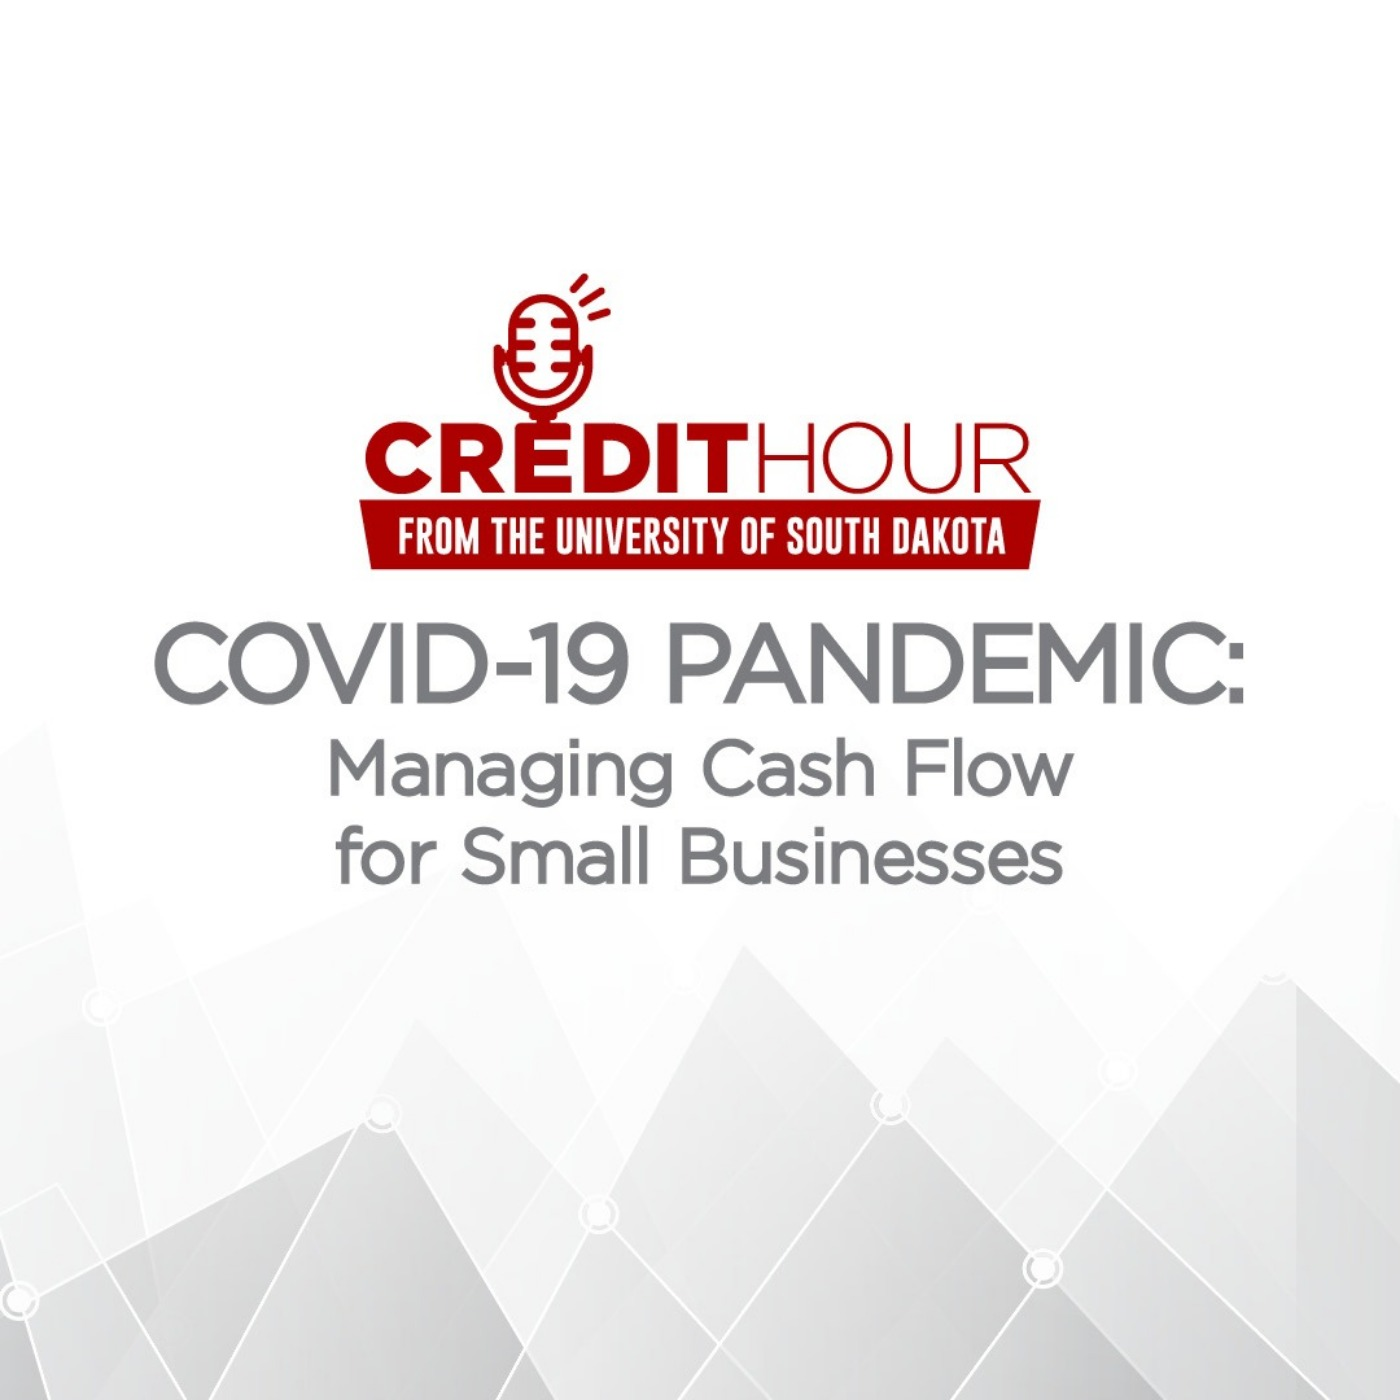 COVID-19 PANDEMIC | Managing Cash Flow for Small Businesses